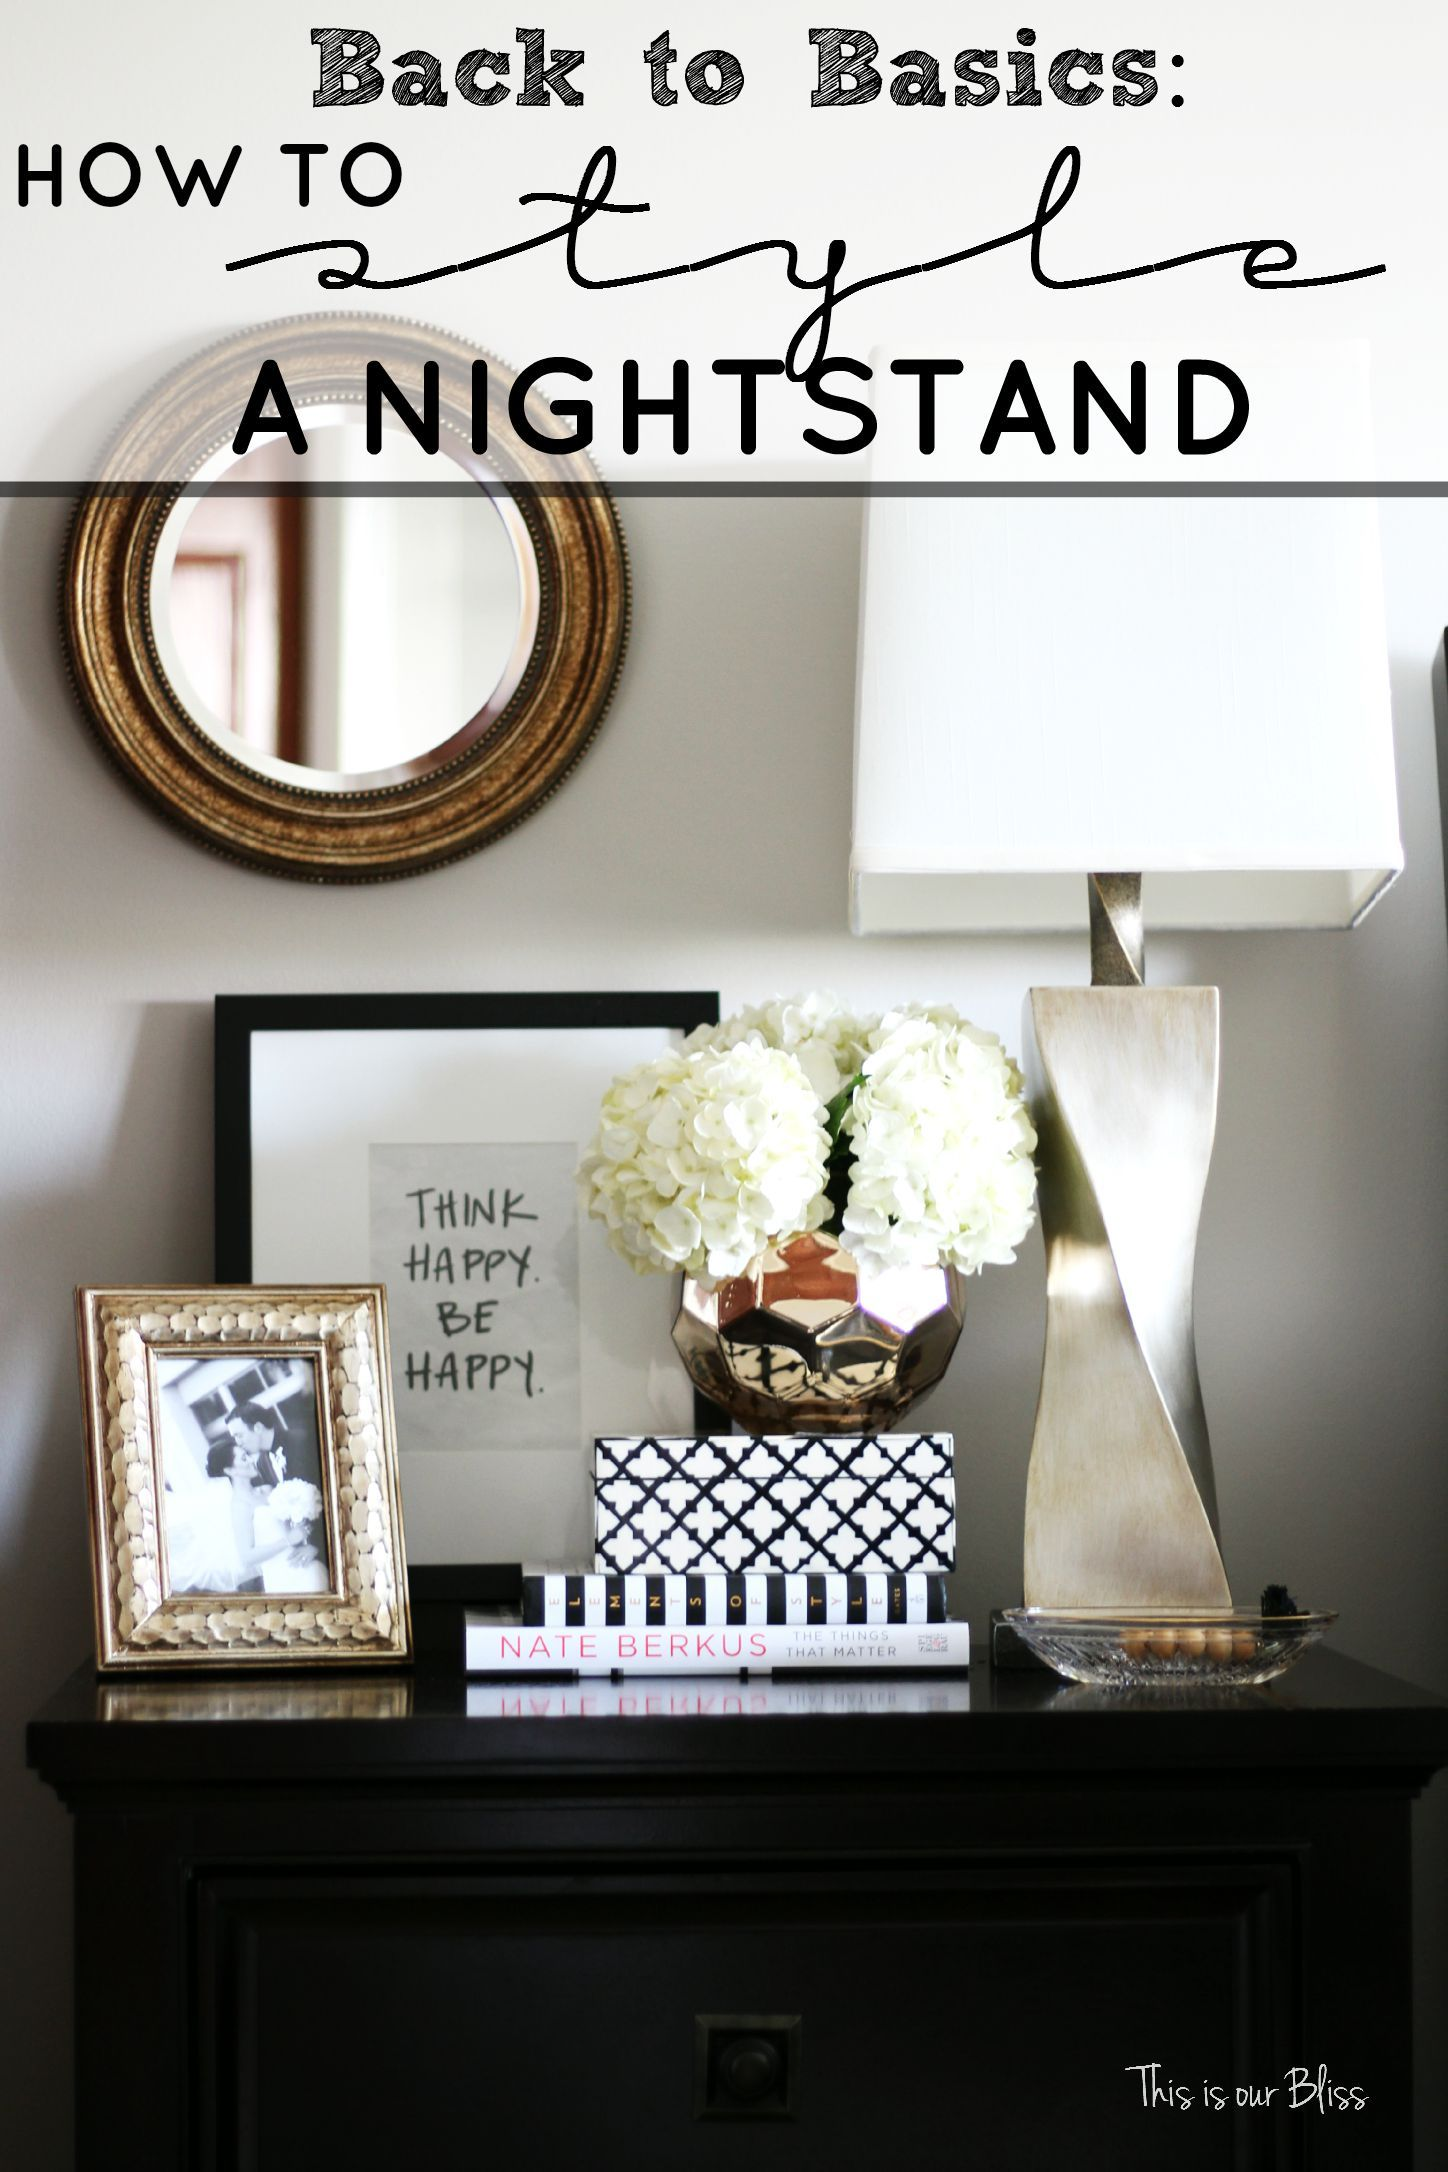 Bedroom decor   Back to Basics   How to style a nightstand   6 elements of  a well. How to Style a Nightstand   Style  Lamps and Tables